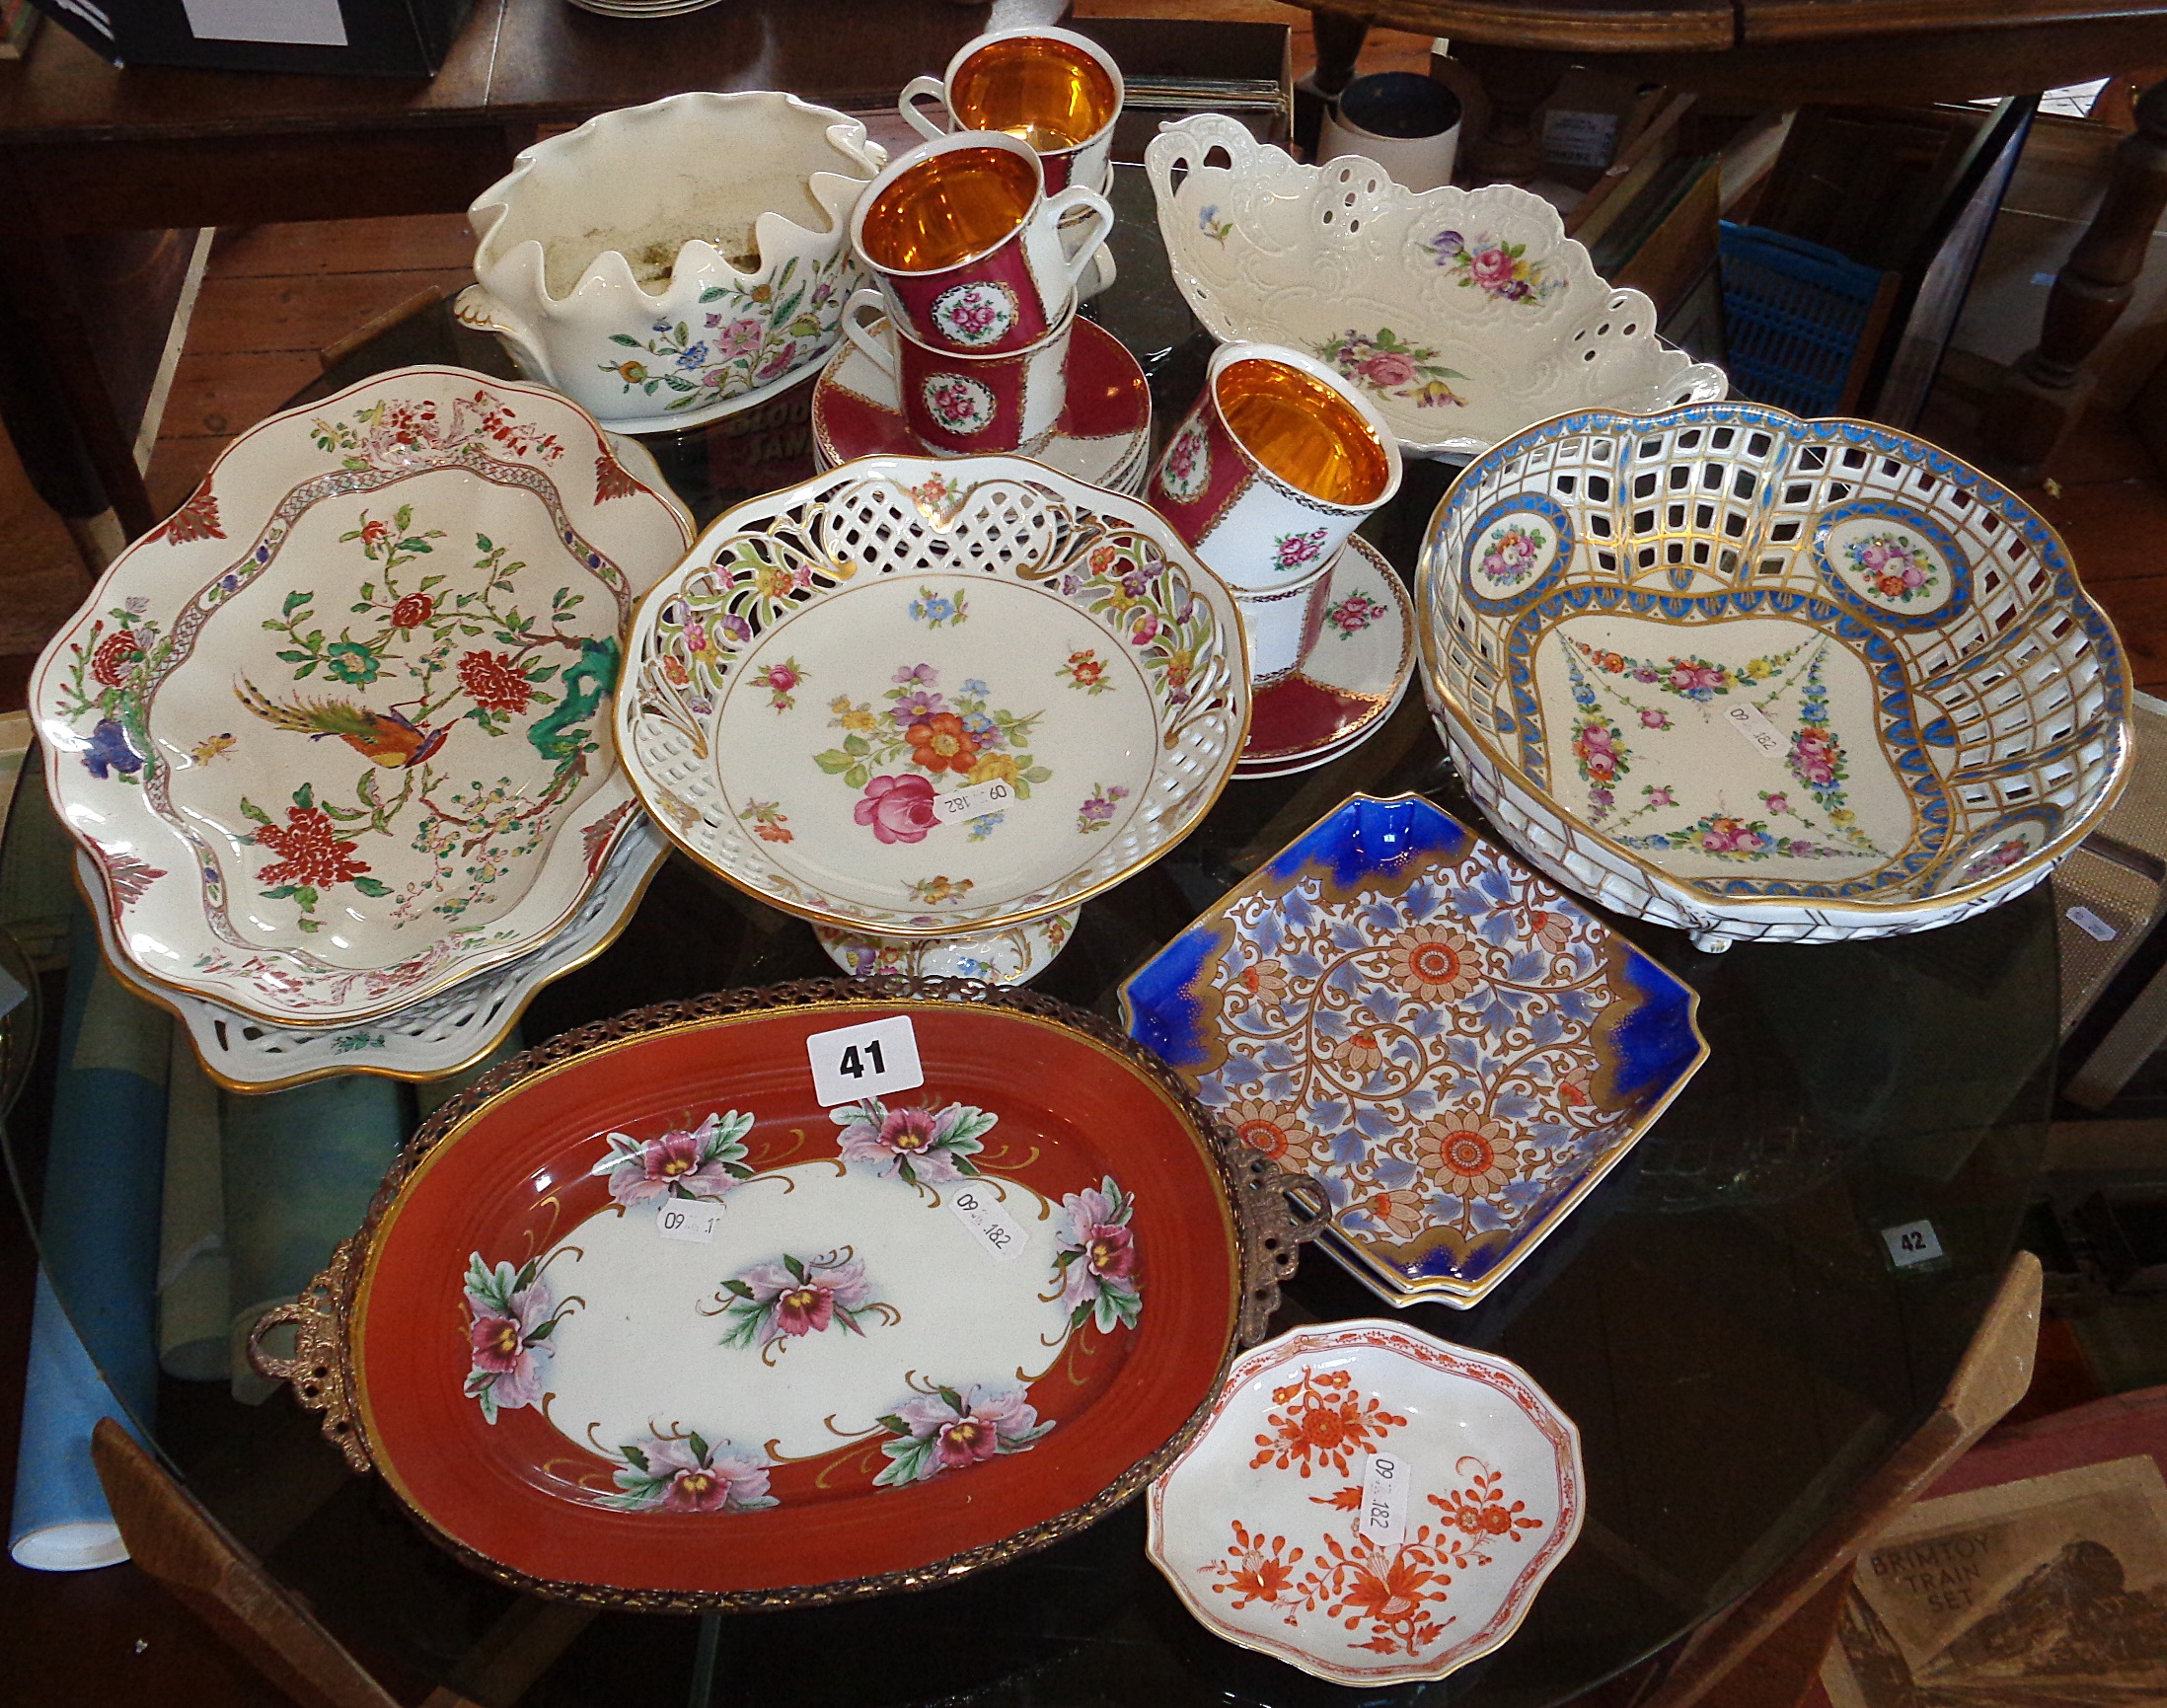 Lot 41 - Czechoslovakian gilded teacups, Dresden pierced bowl on legs, a Minton china flower vase, two signed